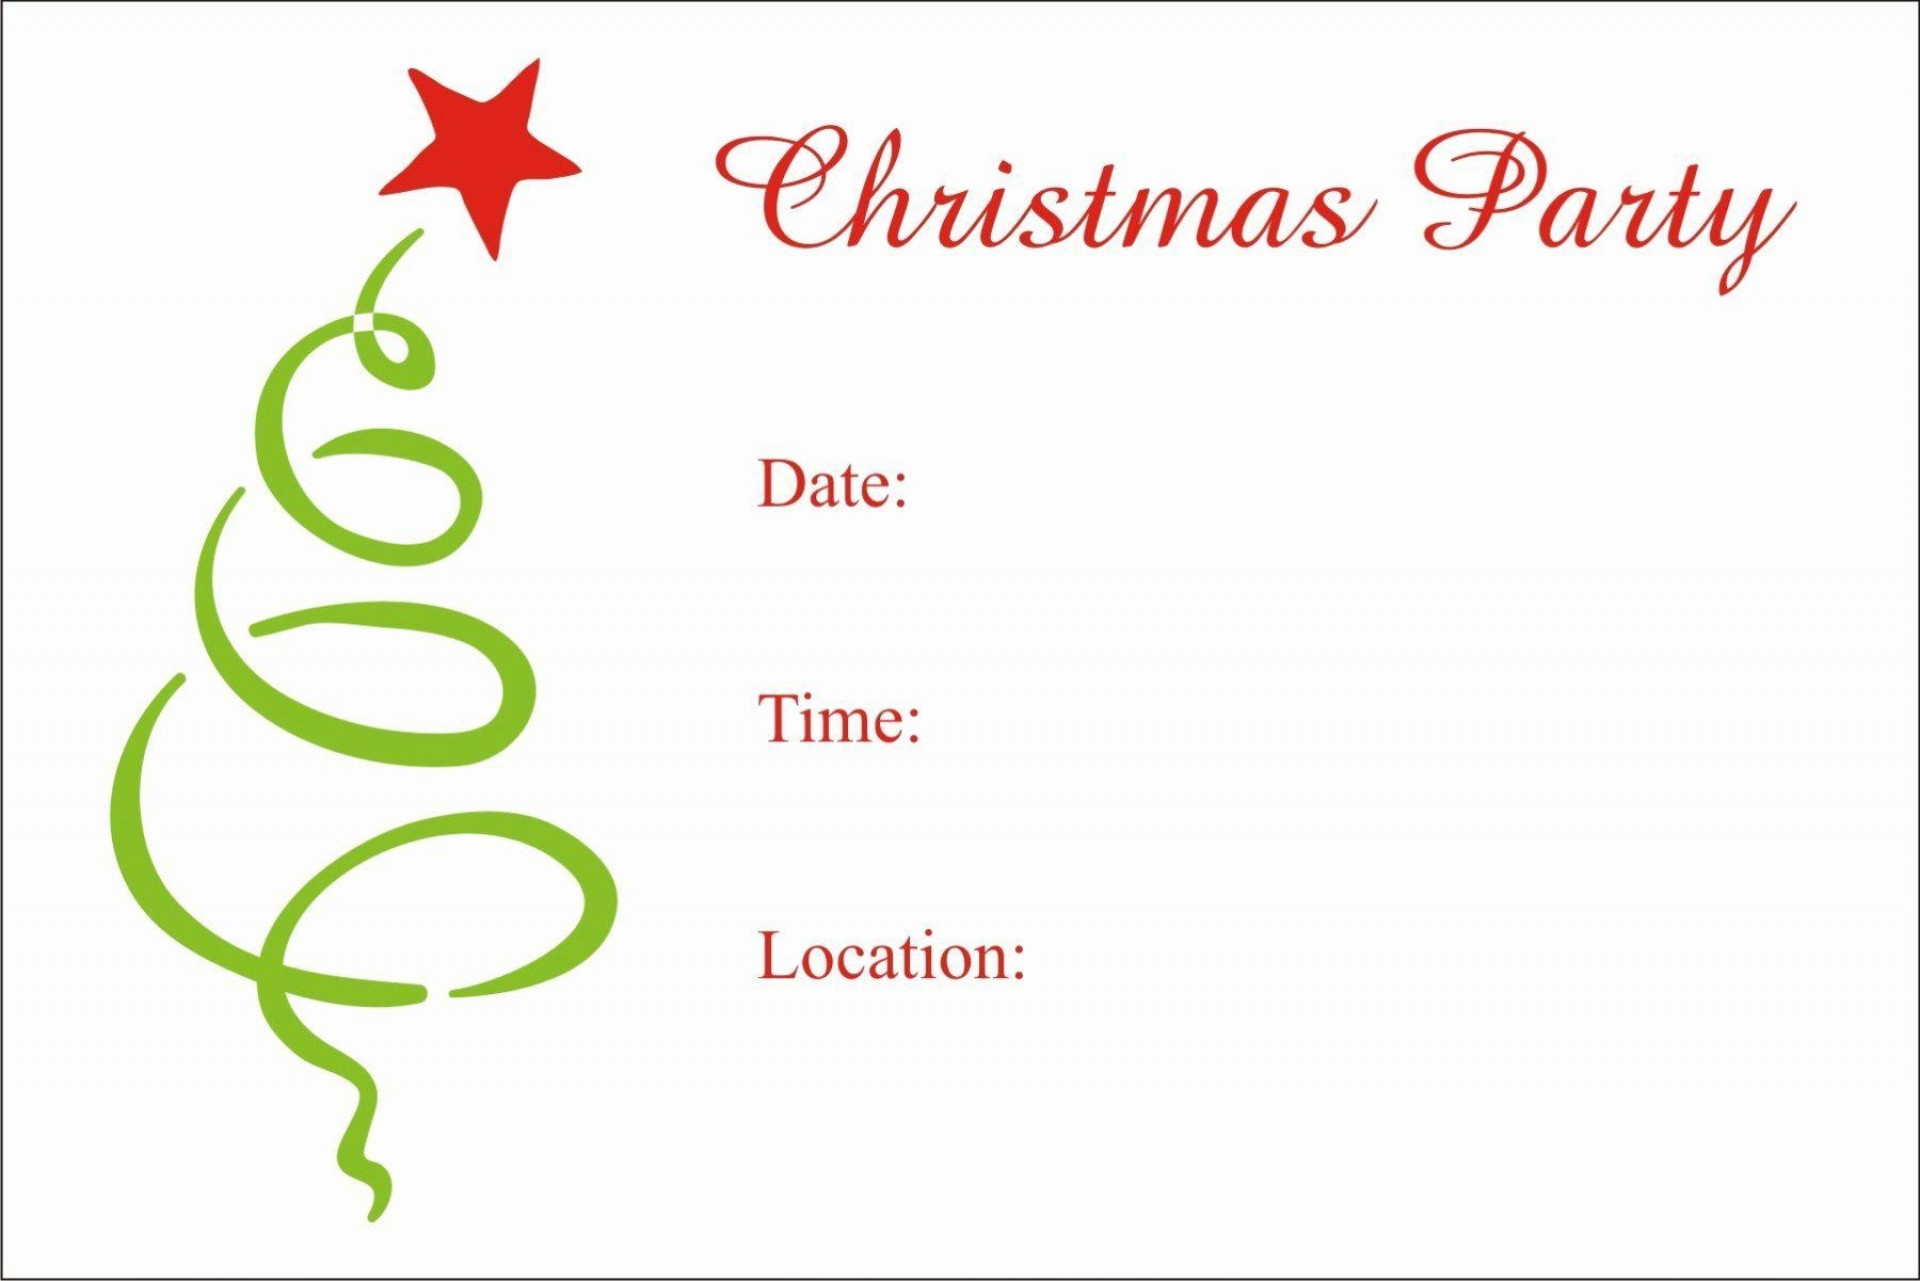 002 Shocking Free Holiday Invitation Template Highest Quality  Online Party Christma1920